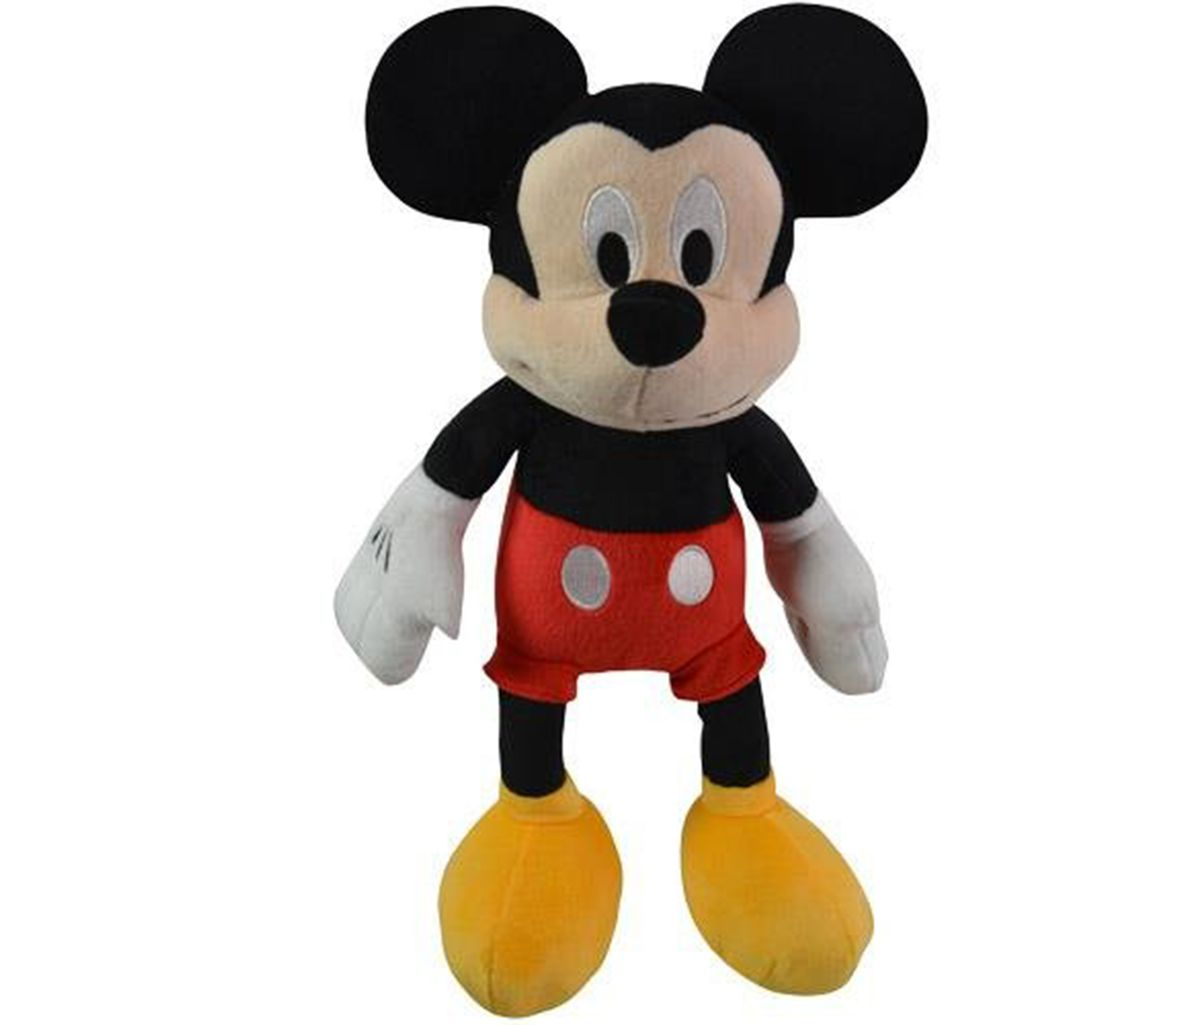 Disney Disney Mickey Mouse Plush Doll Novelty Character Collectibles by United Pacific Design